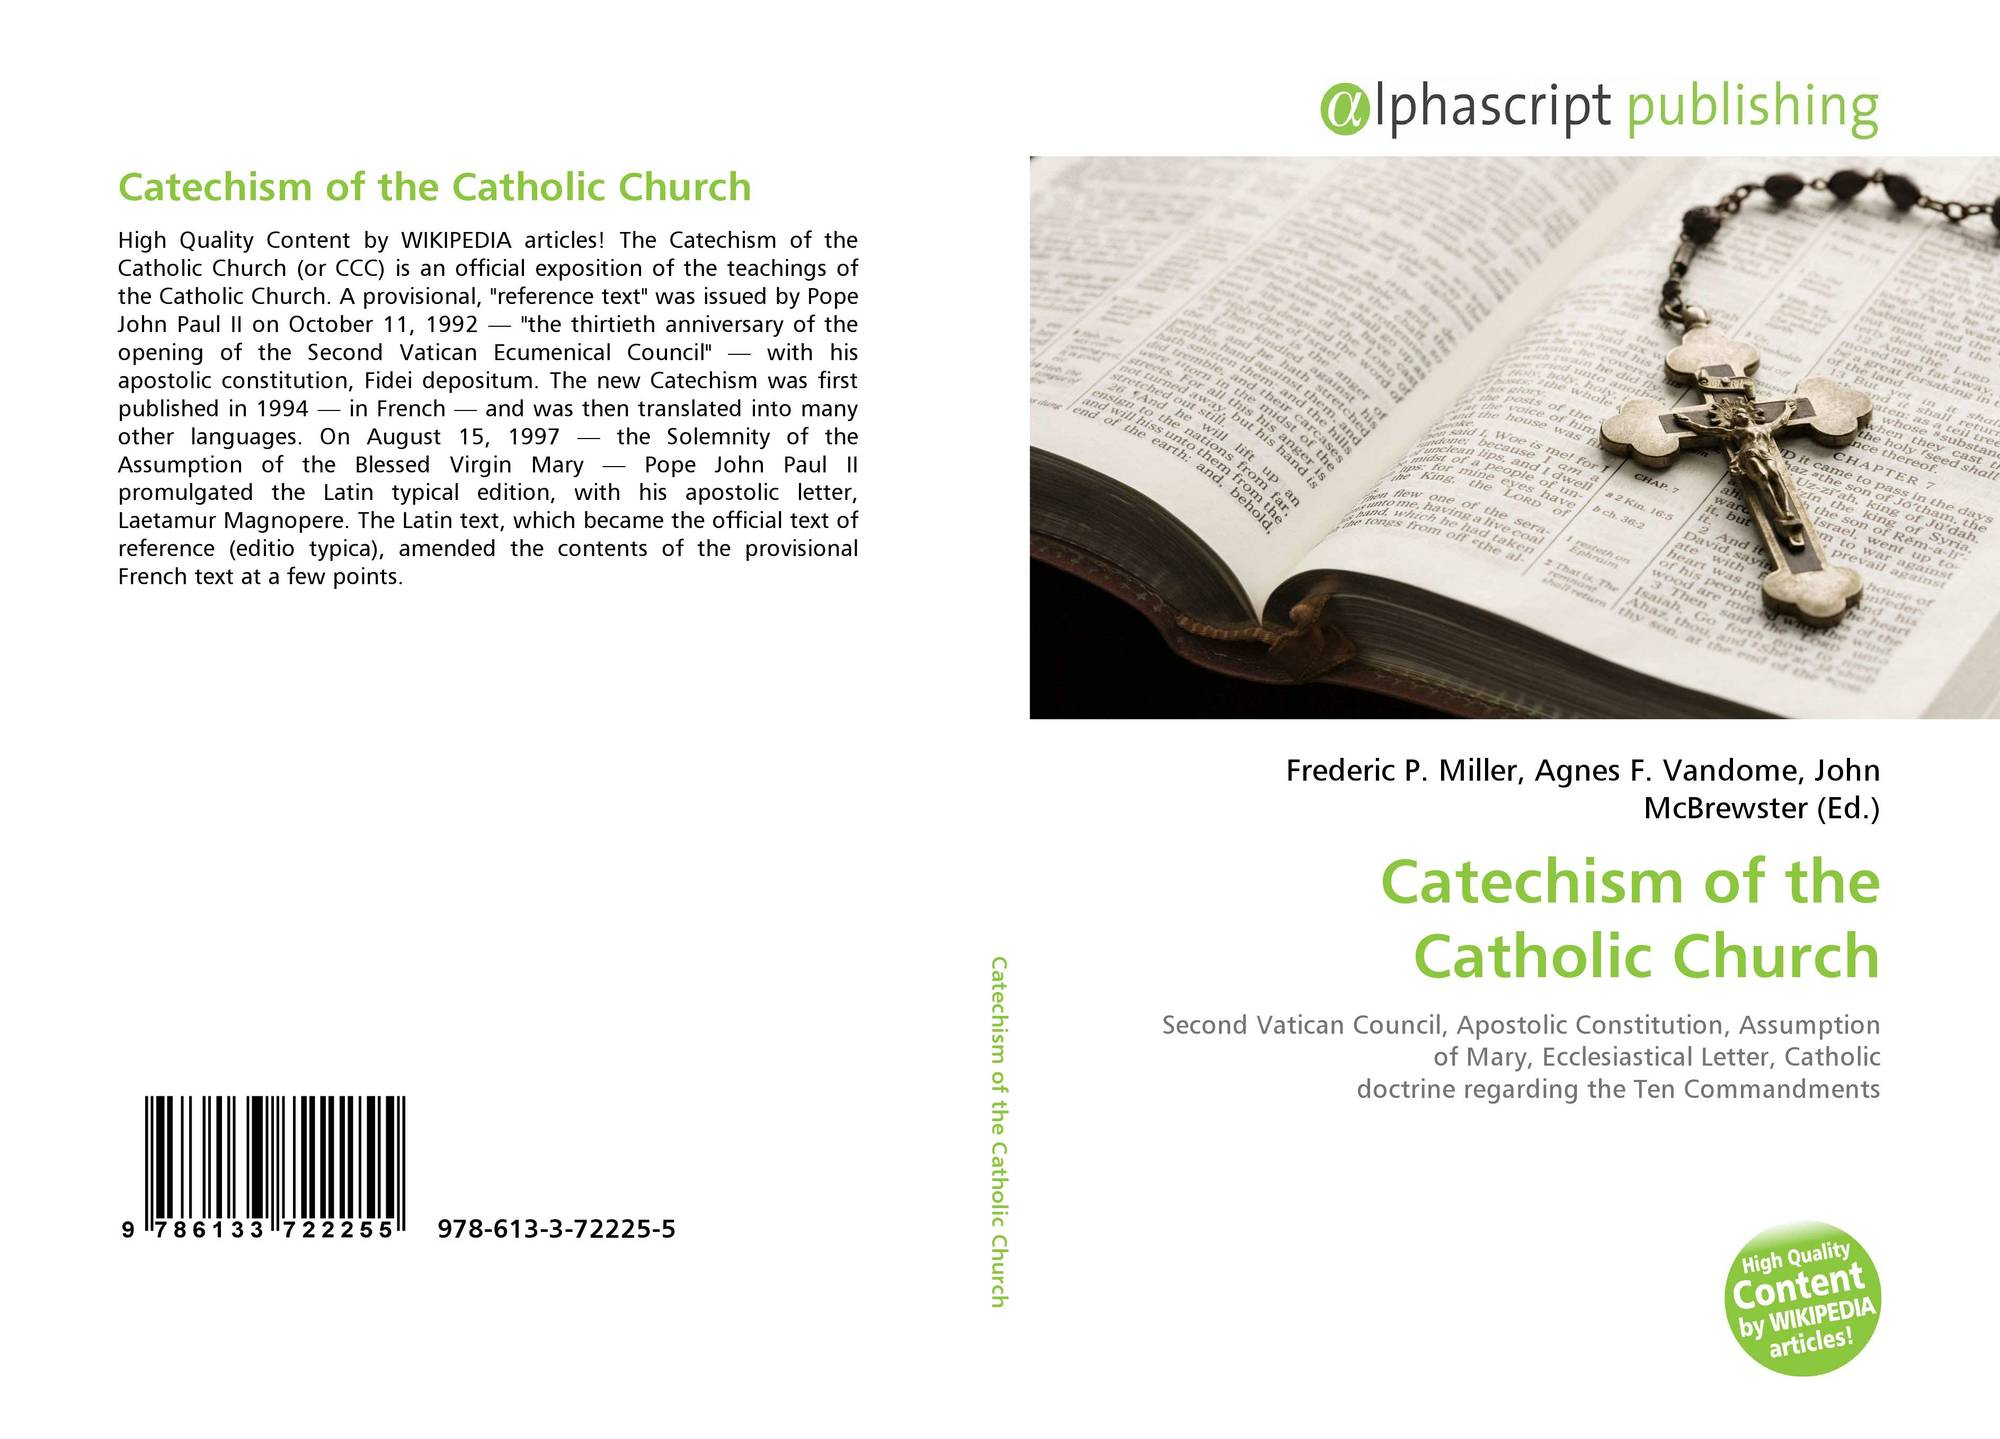 catechism for filipino catholics book 513 pages cbcp catholic bishops' conference of the philippines catechism for filipino catholics uploaded by.